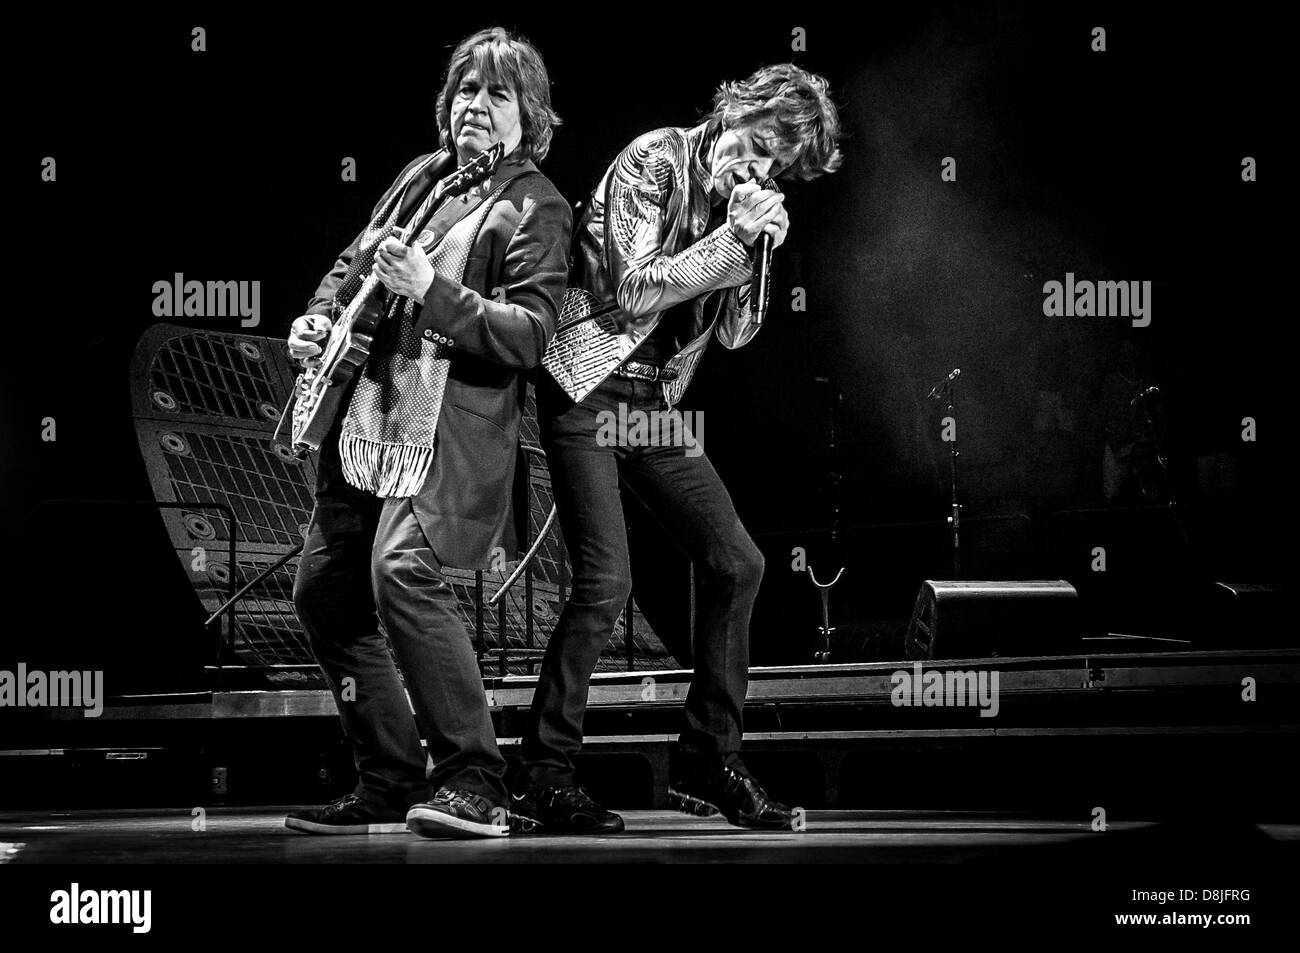 Mick Jagger & Mick Taylor of the Rolling Stones during their '50 & Counting' tour in Toronto, Canada. - Stock Image